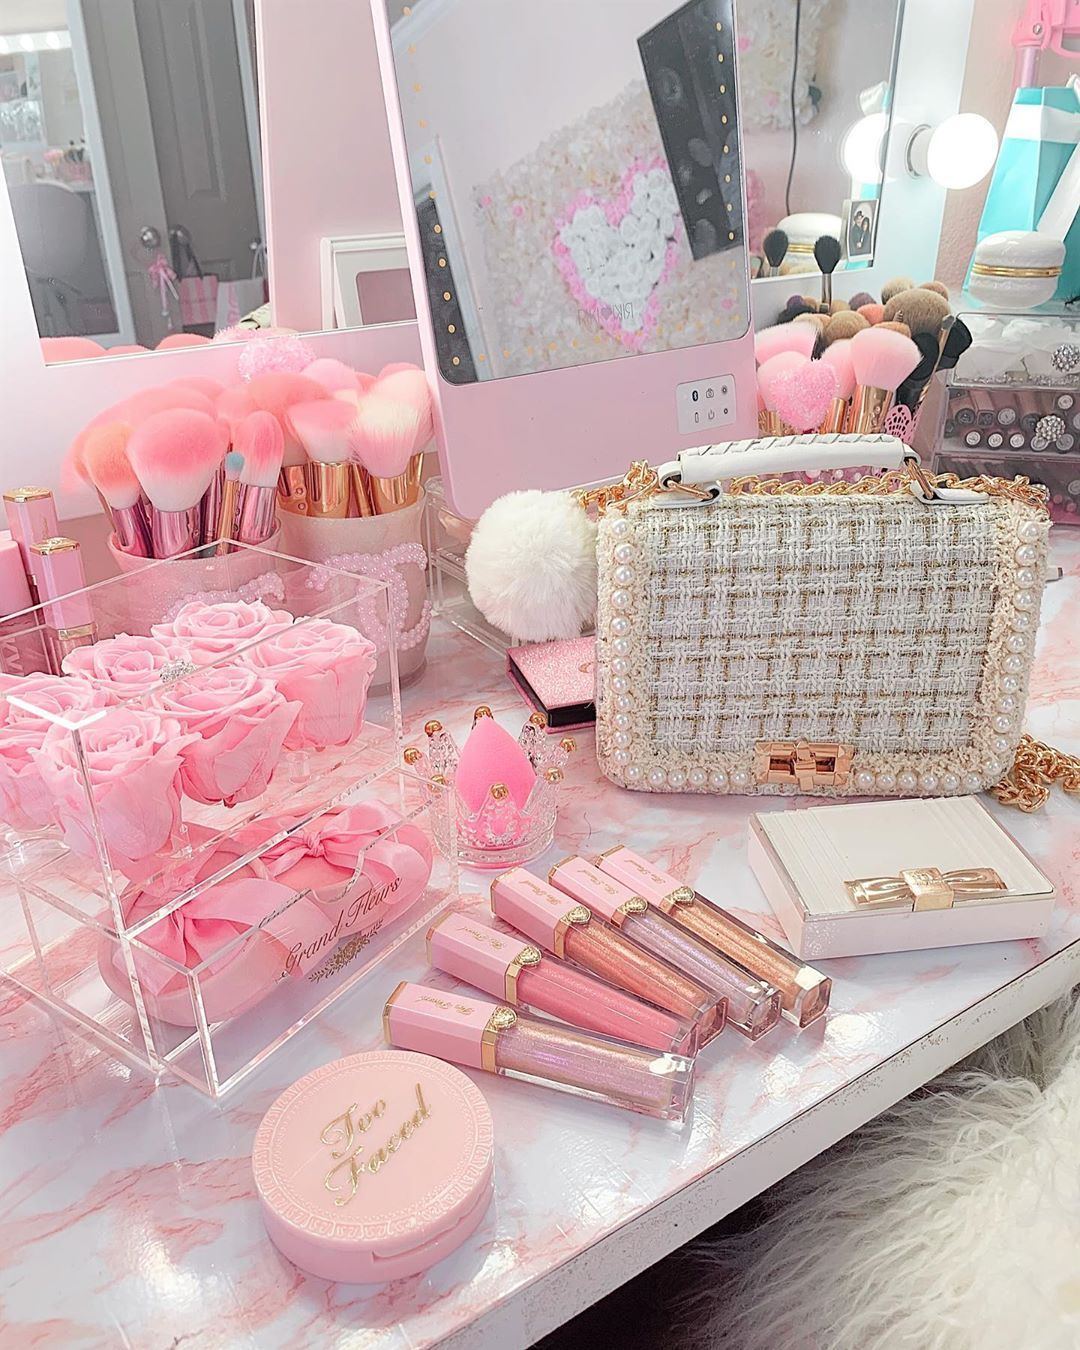 Pink Aesthetic In 2020 Makeup Room Decor Baby Pink Aesthetic Girly Room